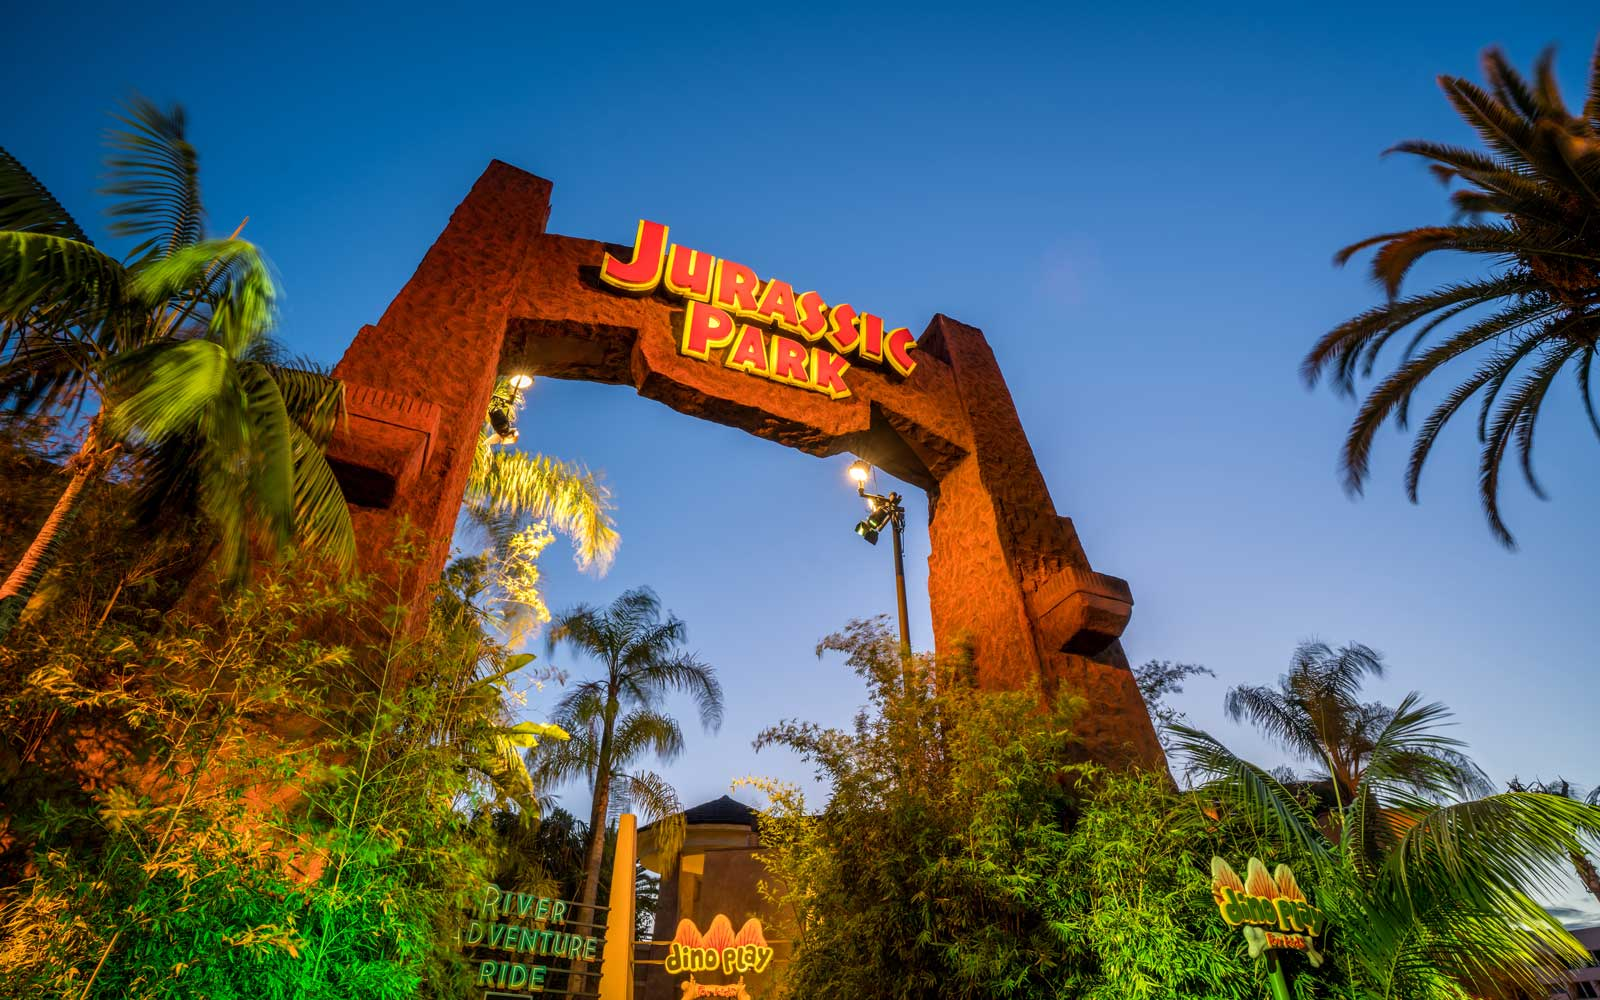 Existing Jurassic Park ride at Universal Studios Hollywood